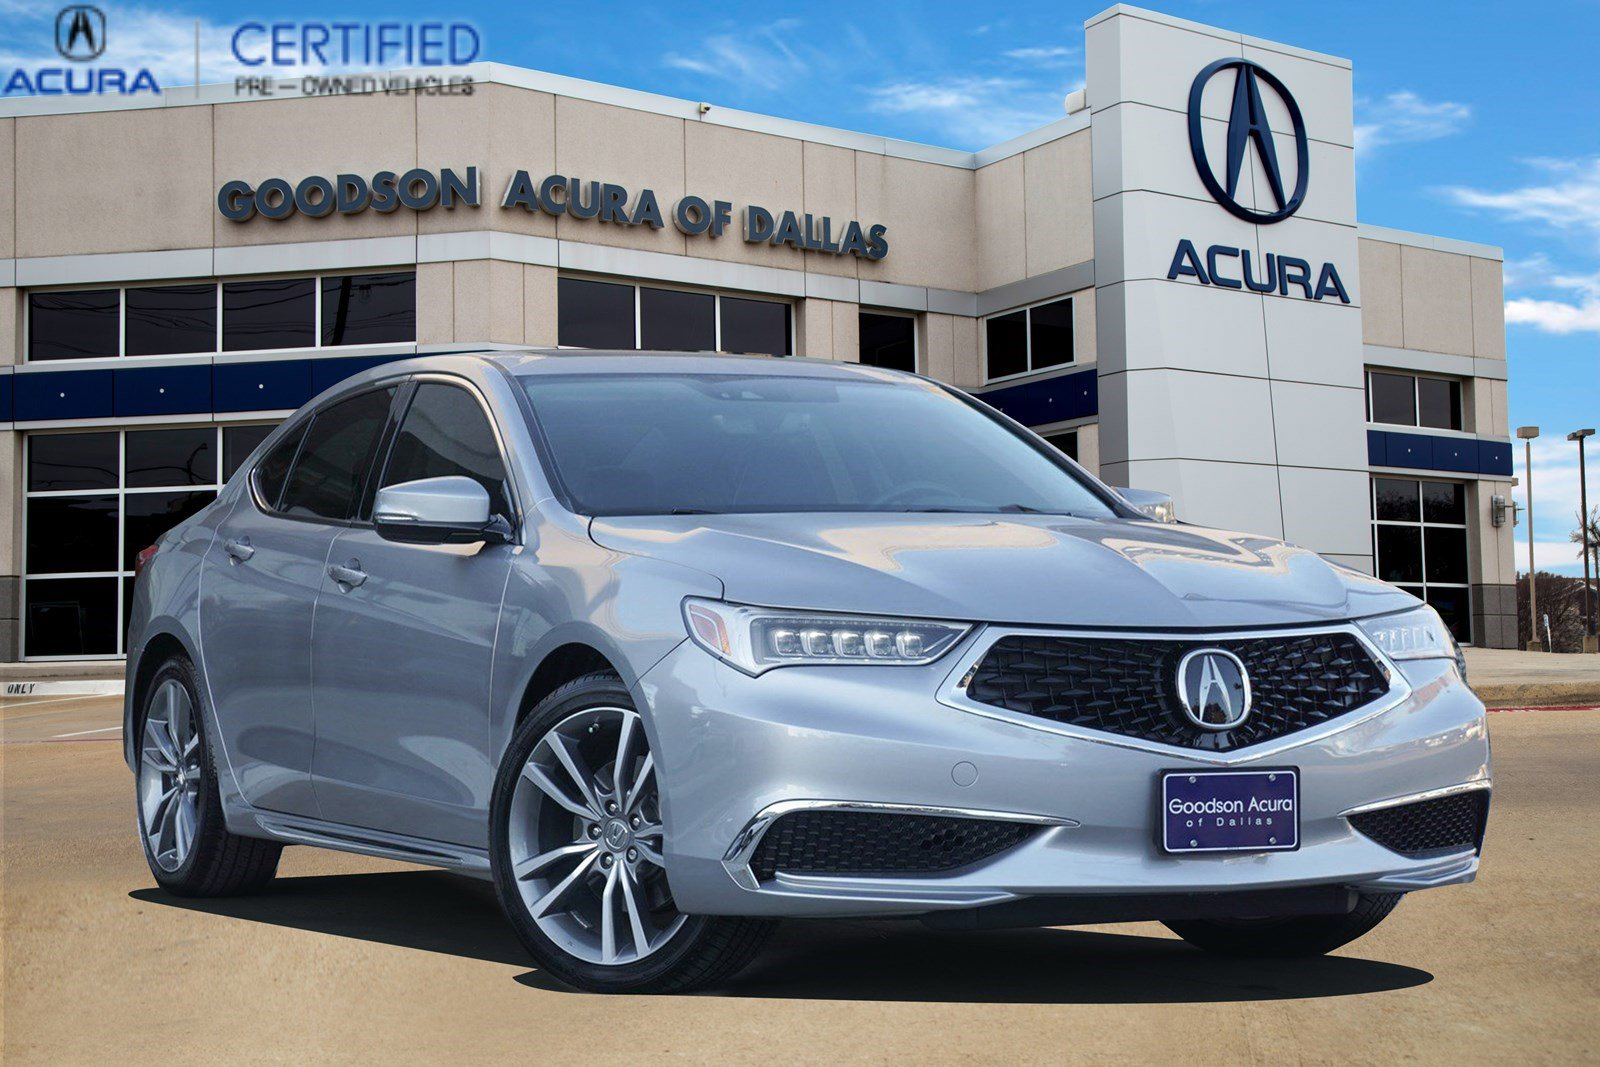 2020 Acura TLX V6 w/ Technology Package image